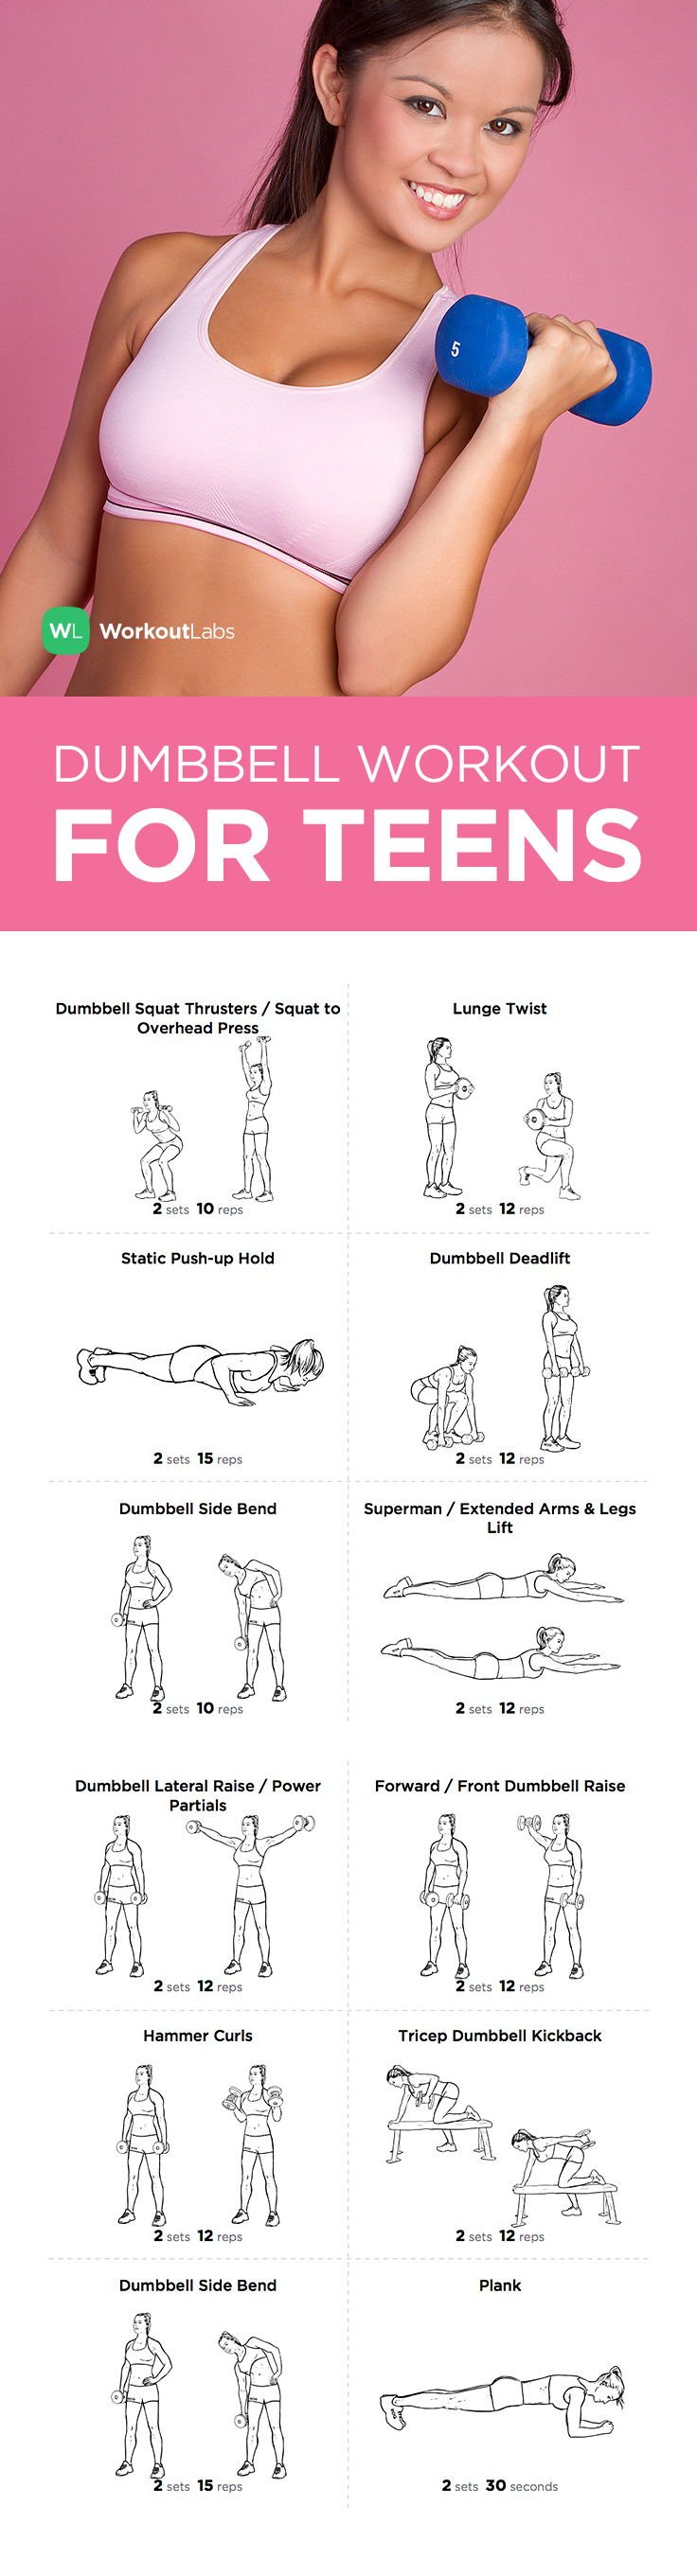 Full Body Dumbbell Workout for Teens